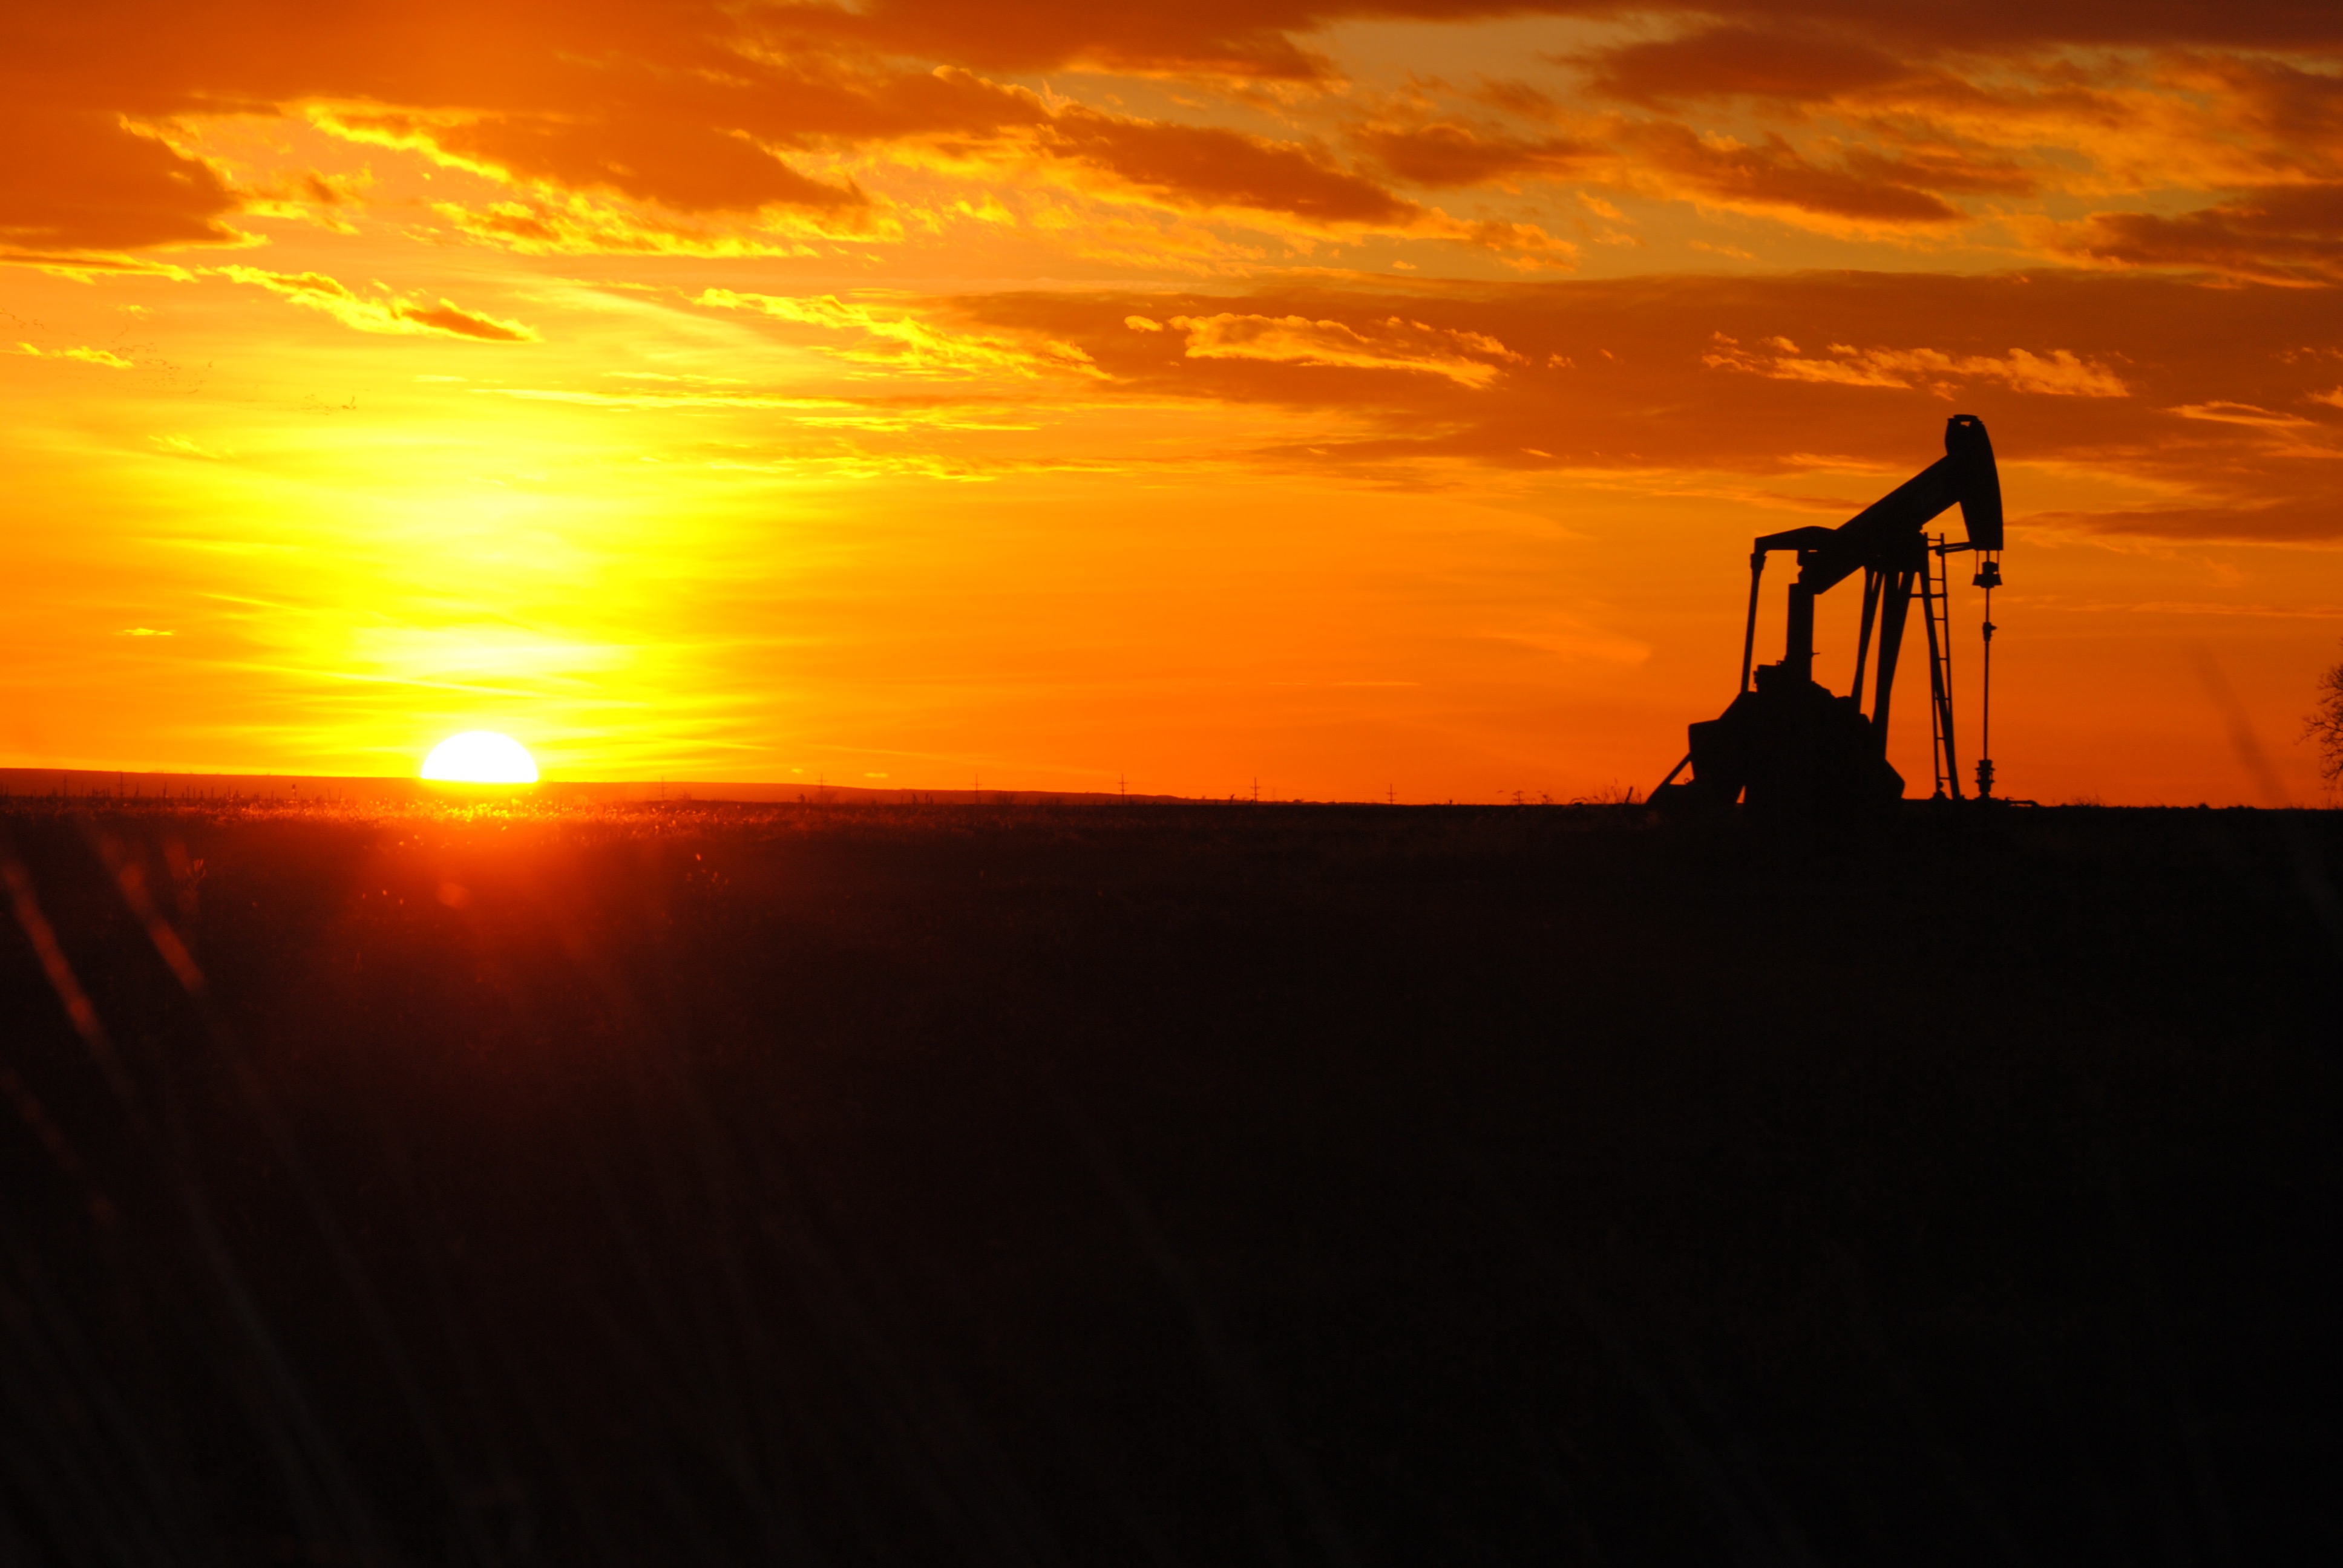 The Beauty of a Kansas Oil Field at Sunset